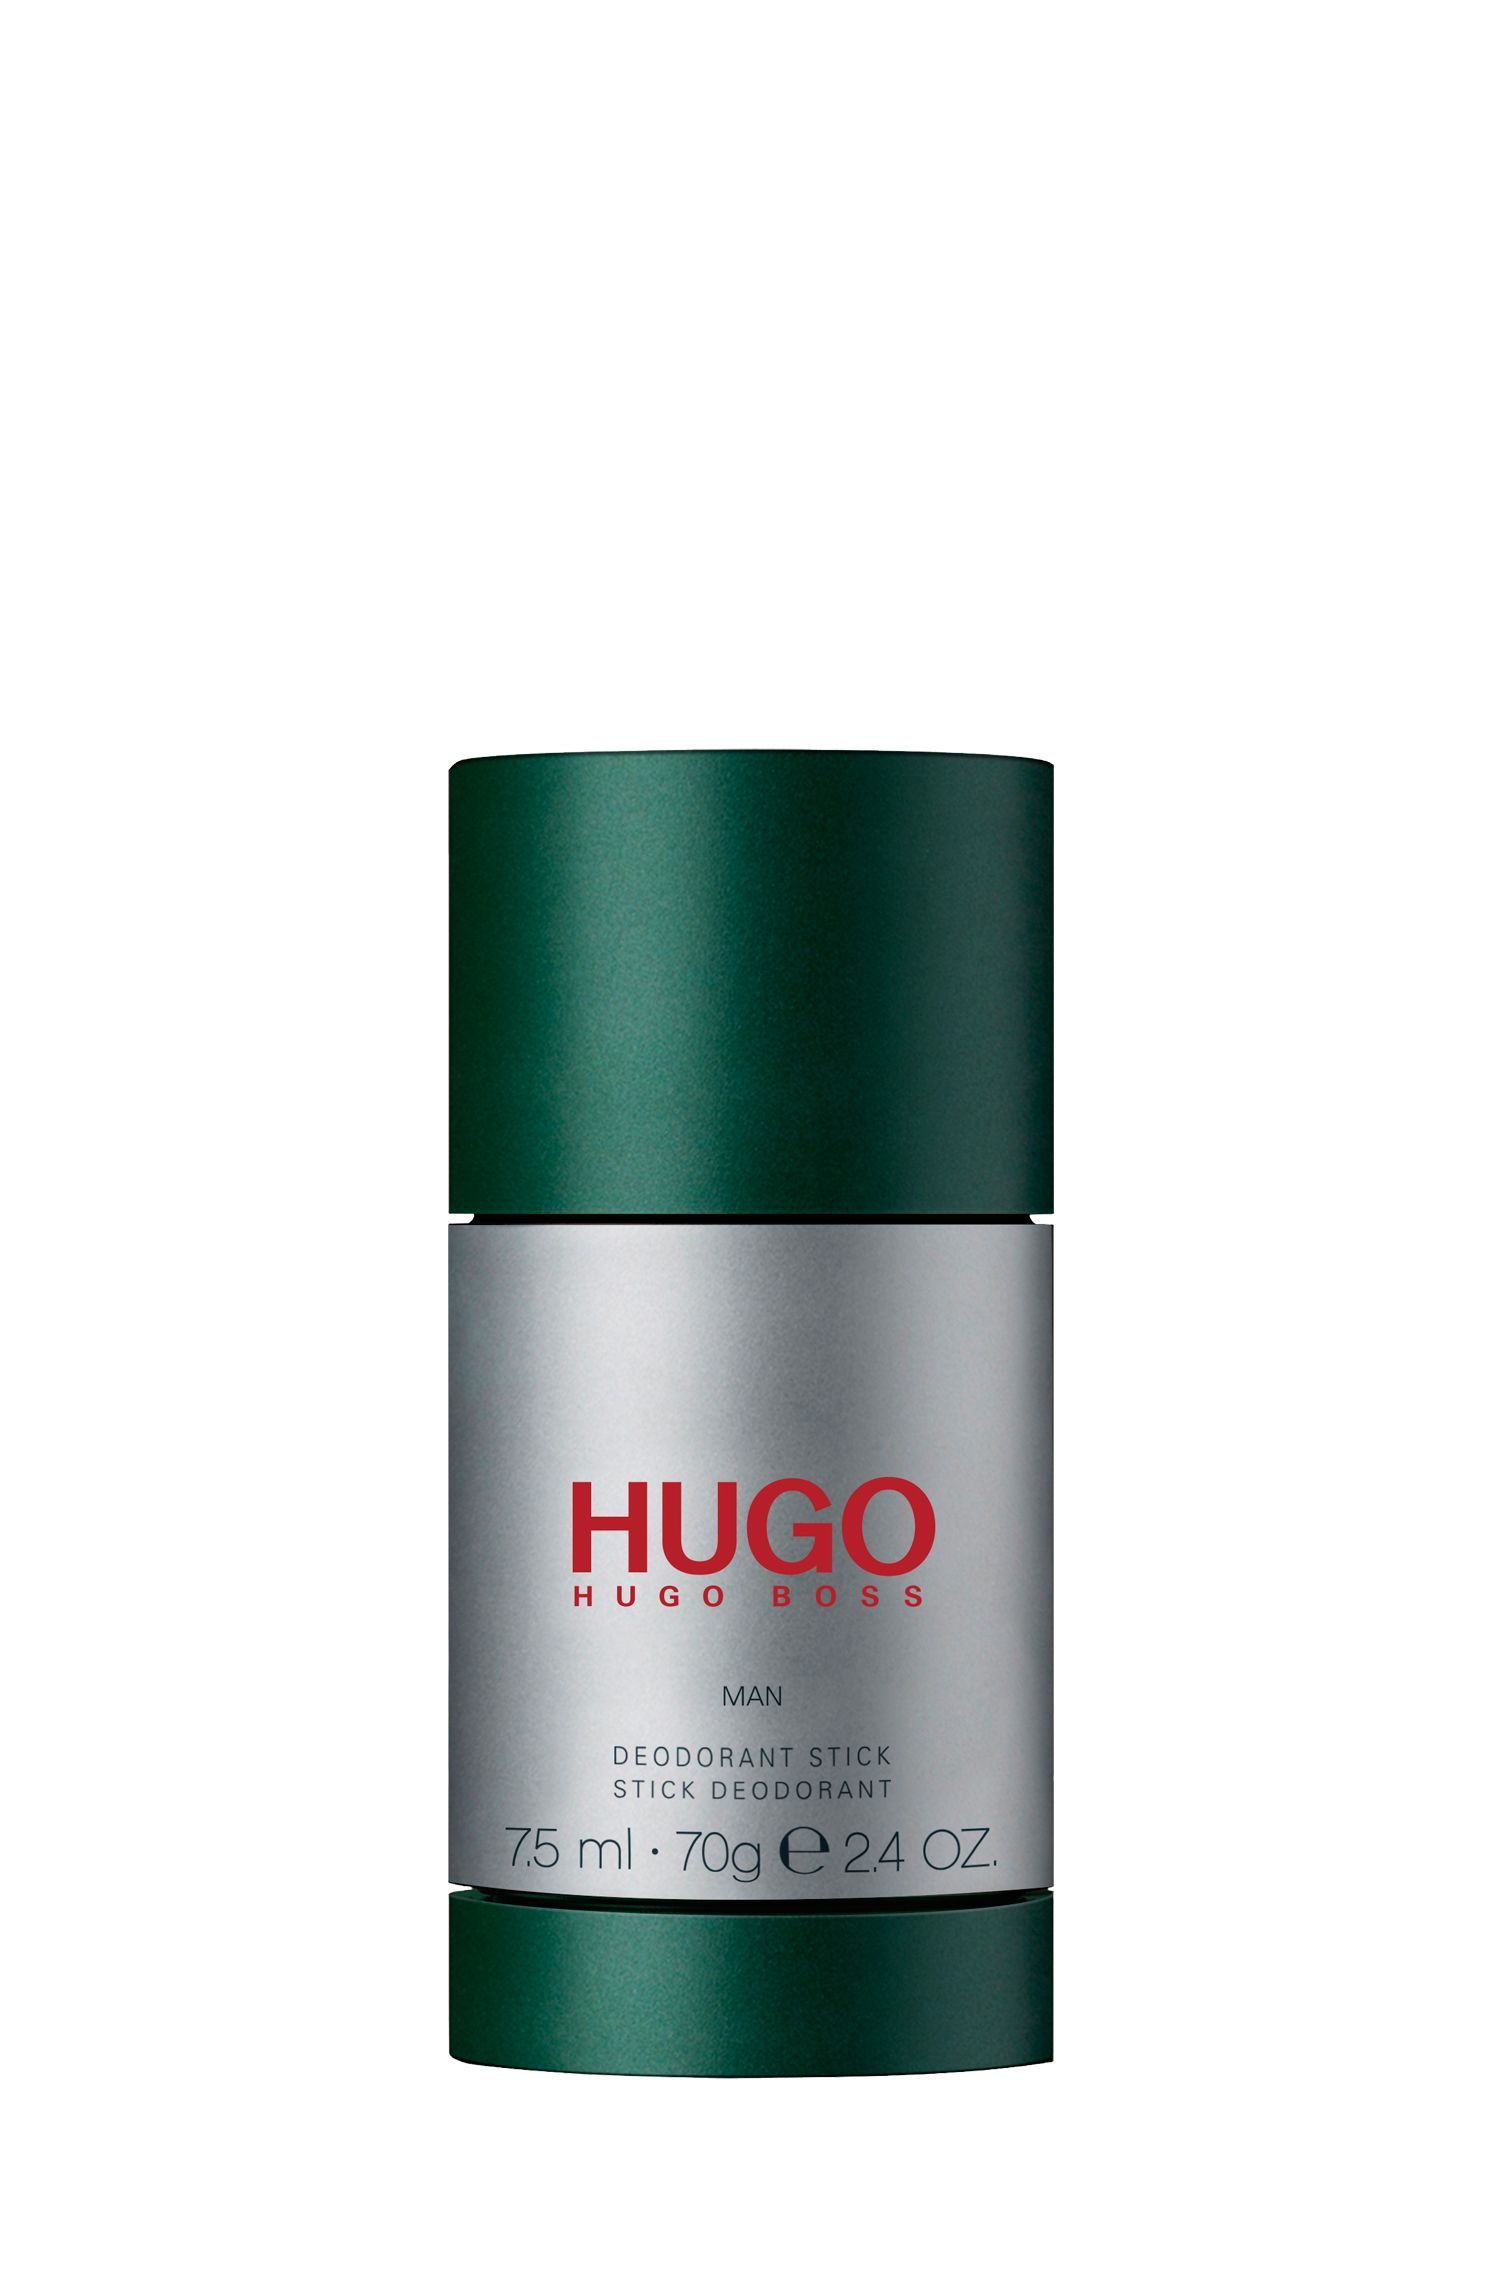 HUGO Man deodorant stick 75ml